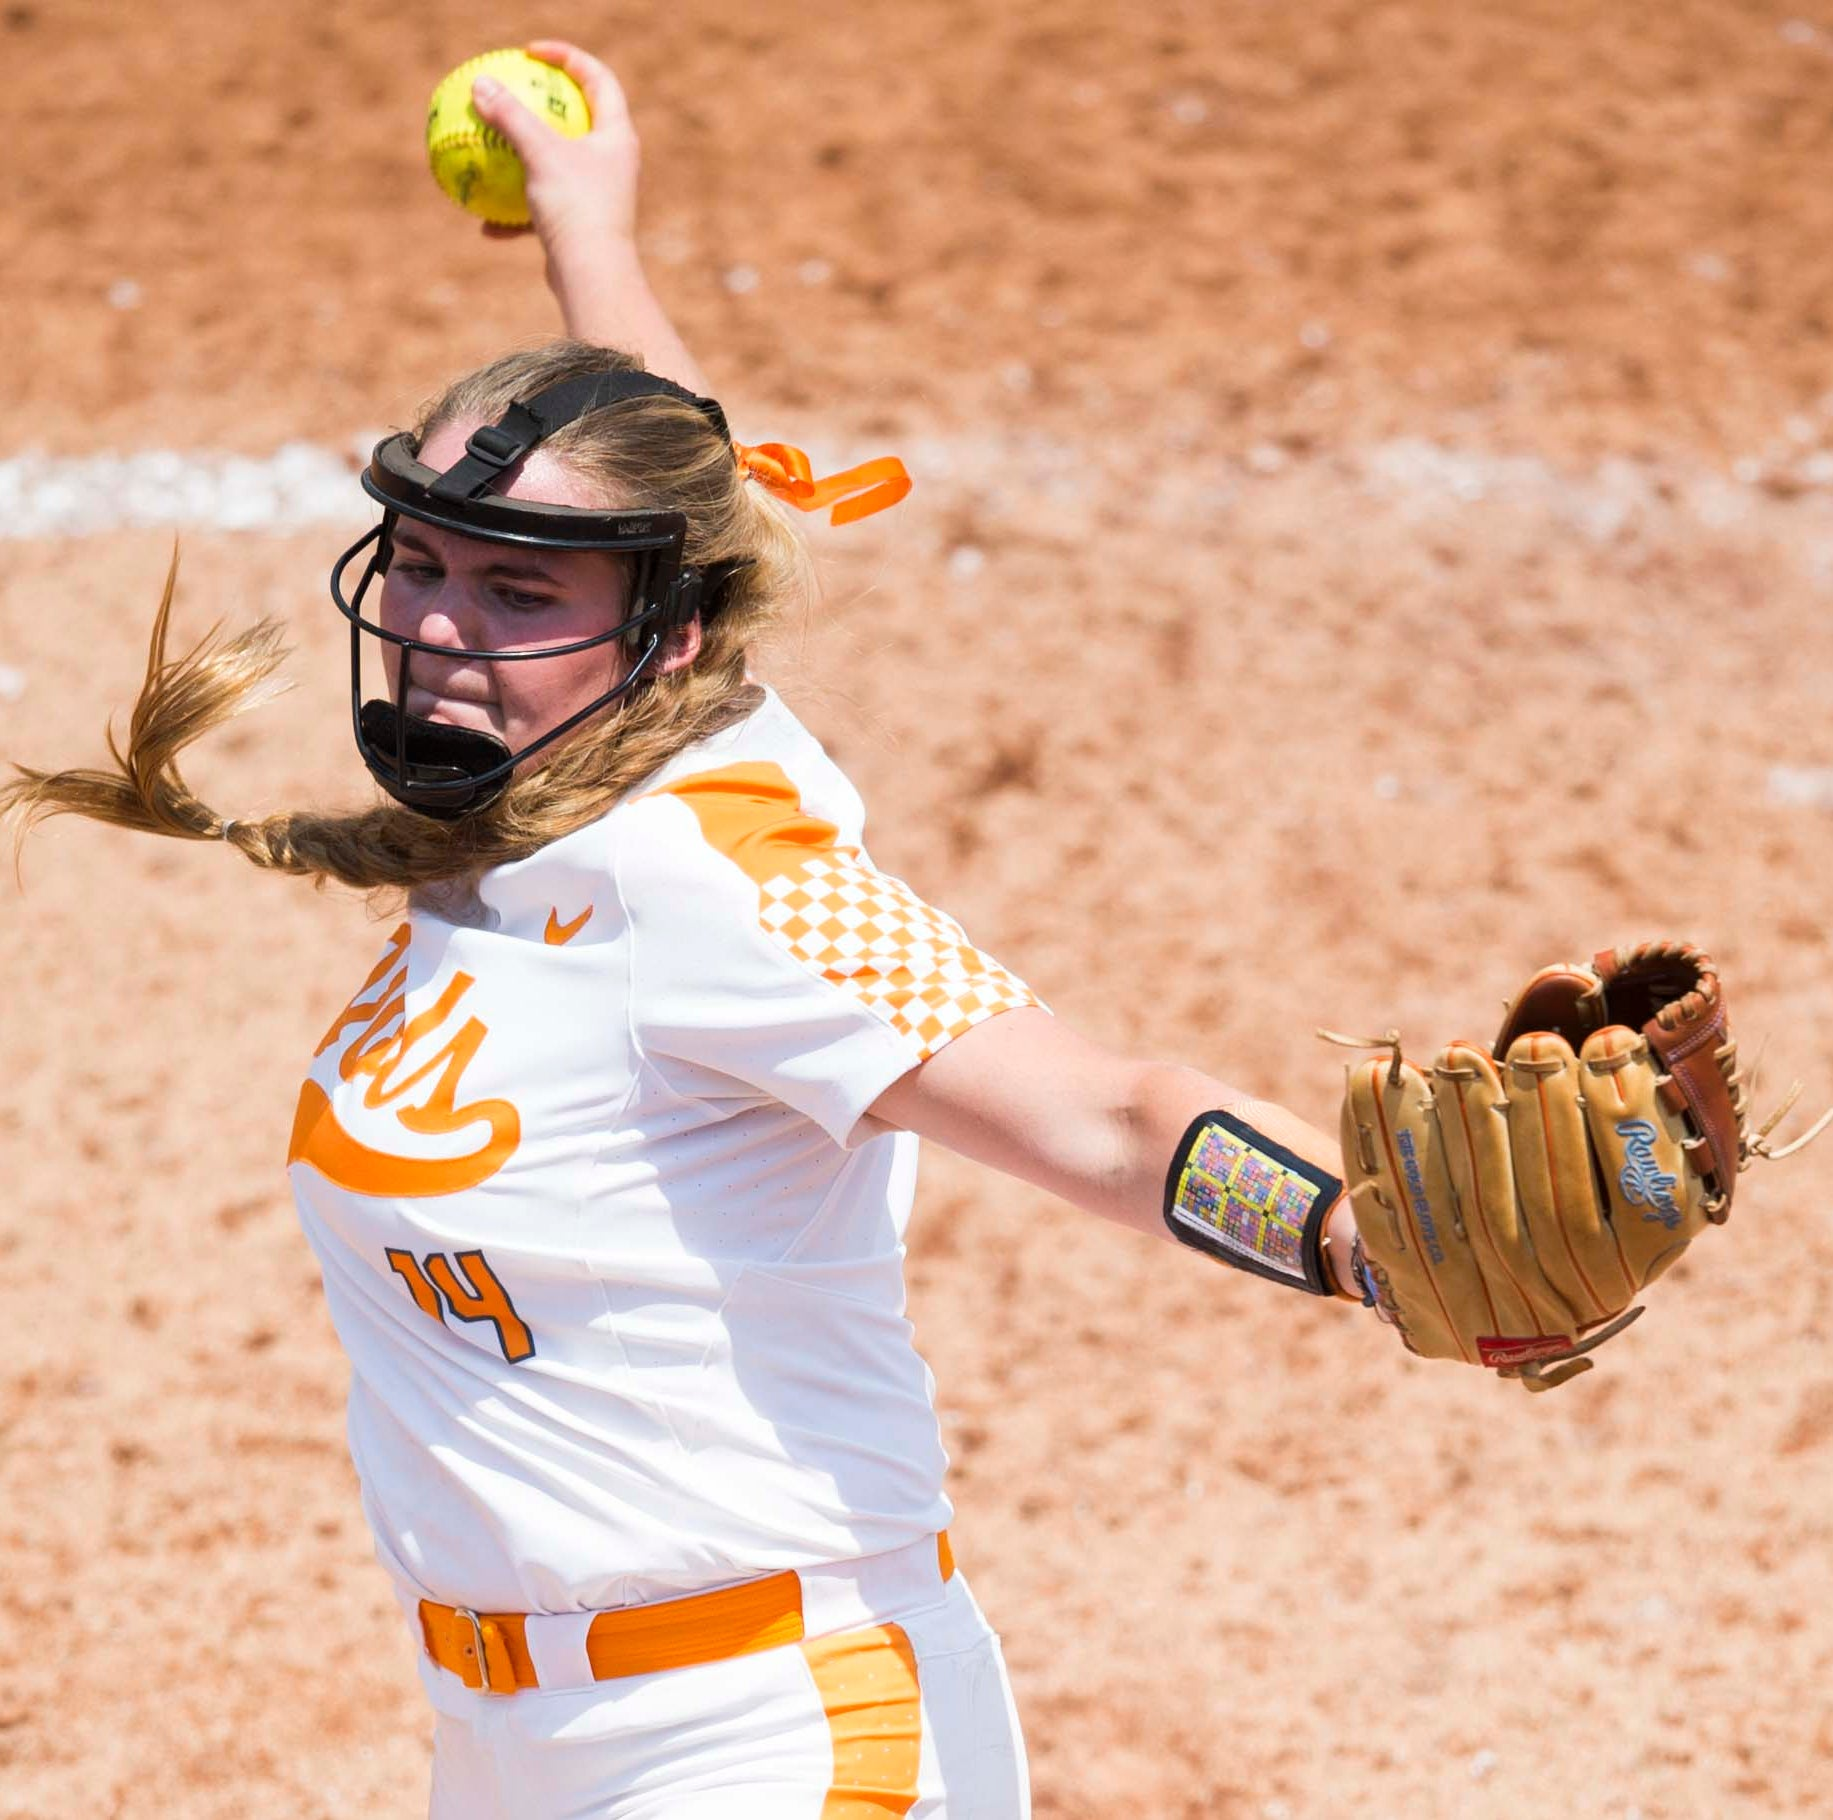 Tennessee's Ashley Rogers (14) pitches the ball during a NCAA Tournament softball game between the Lady Vols and North Carolina, at Sherri Lee Parker Stadium in Knoxville, Sunday, May 19, 2019. North Carolina defeated Tennessee 1-0.